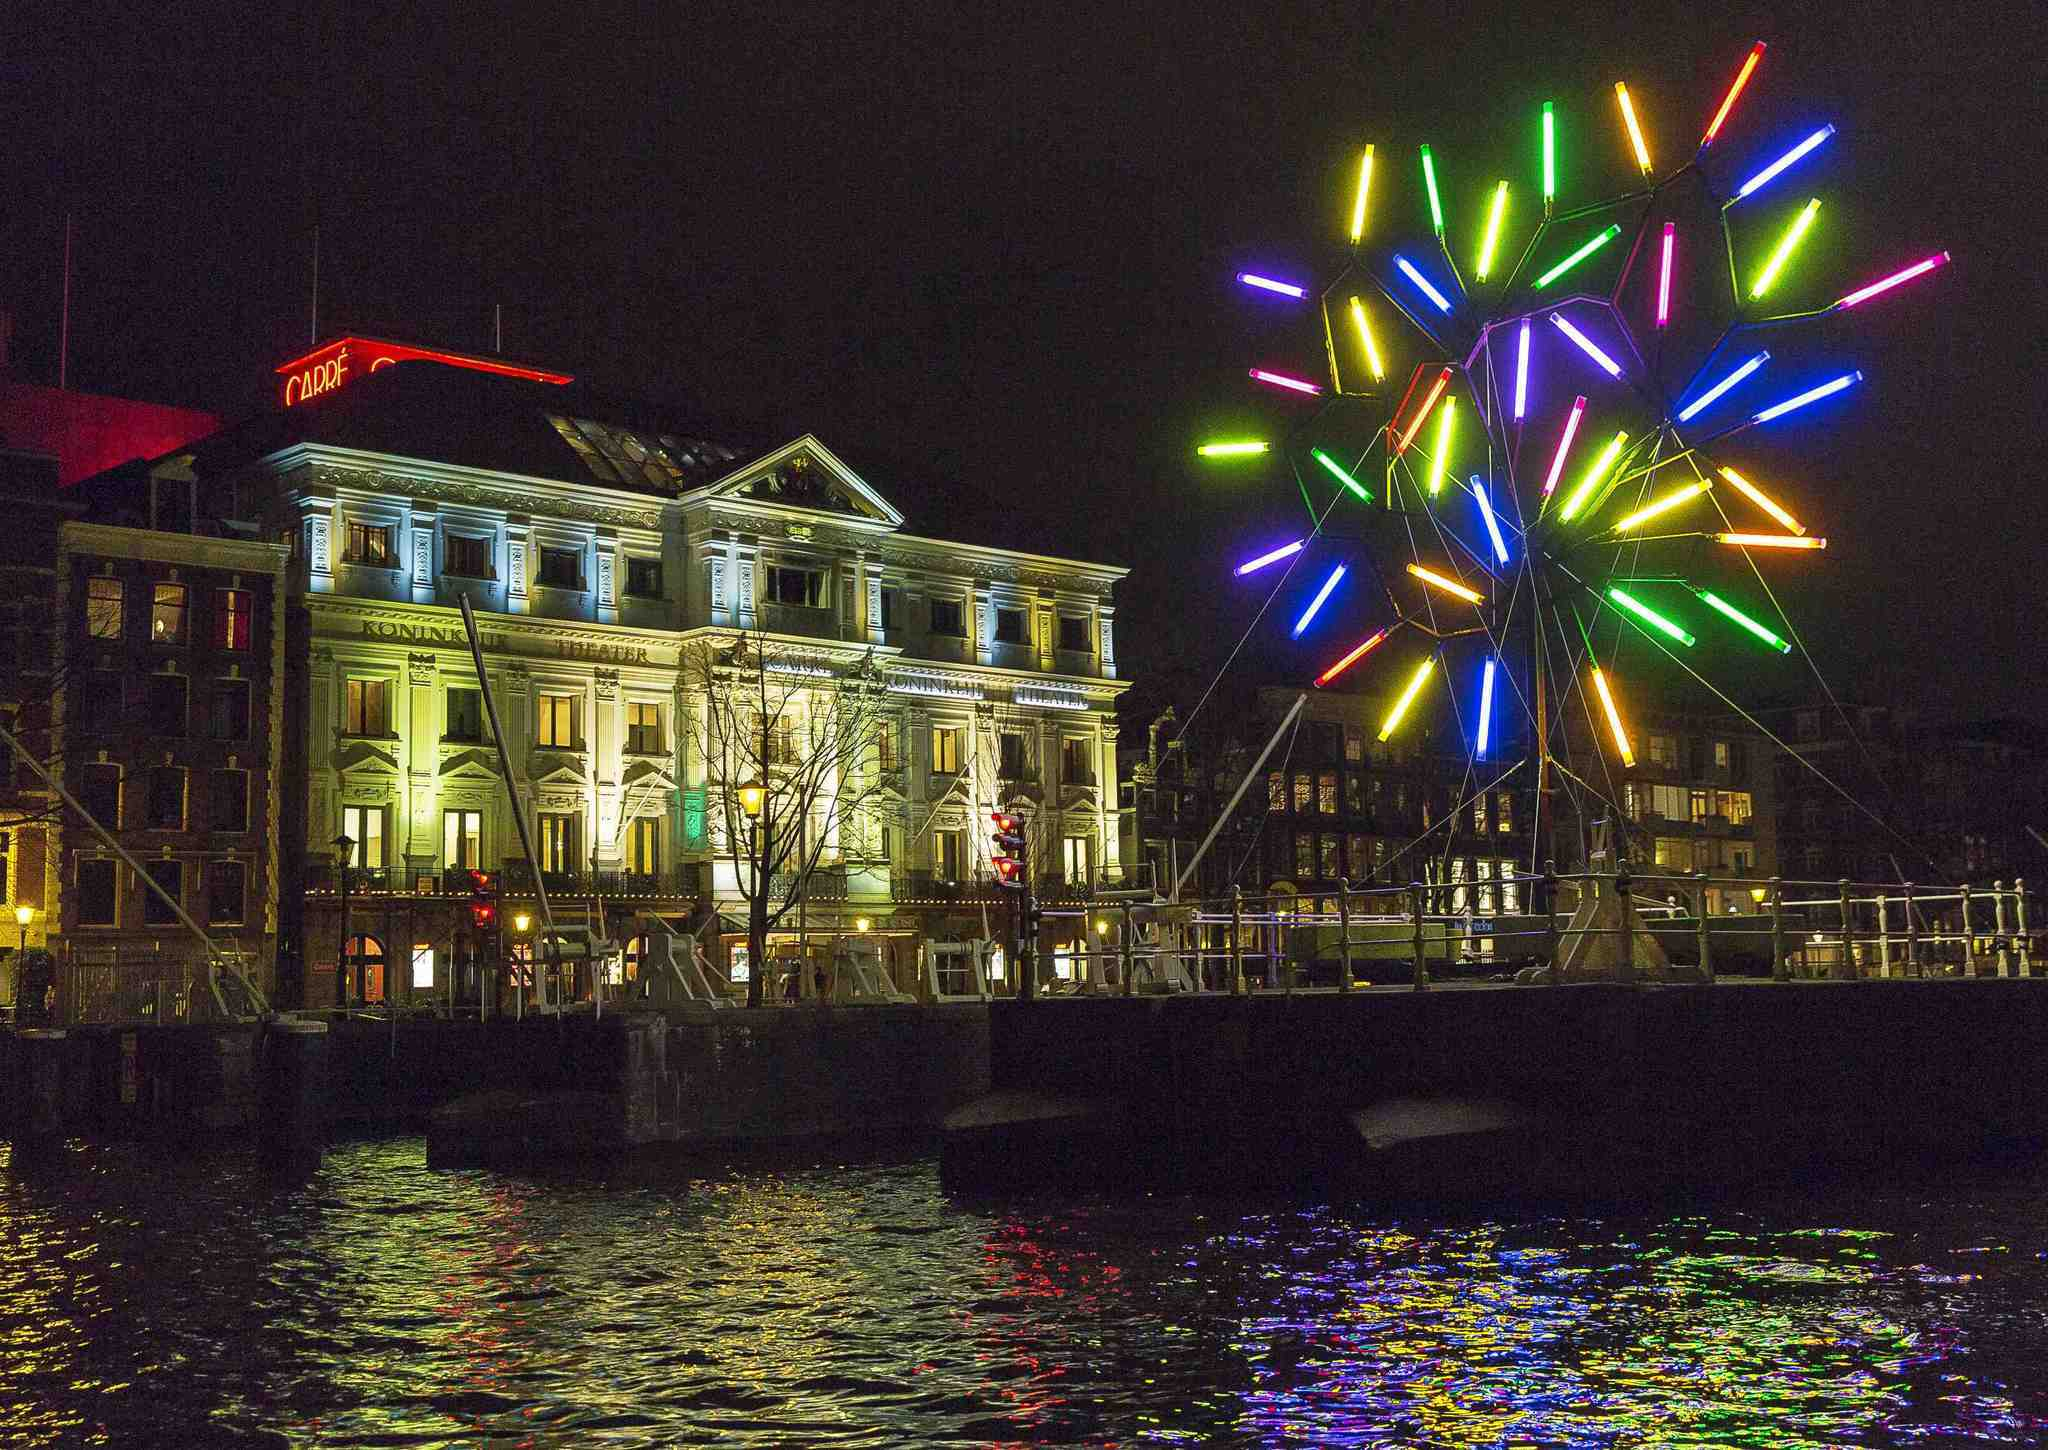 Pictures: Holiday lights from around the globe - Light festival in Amsterdam